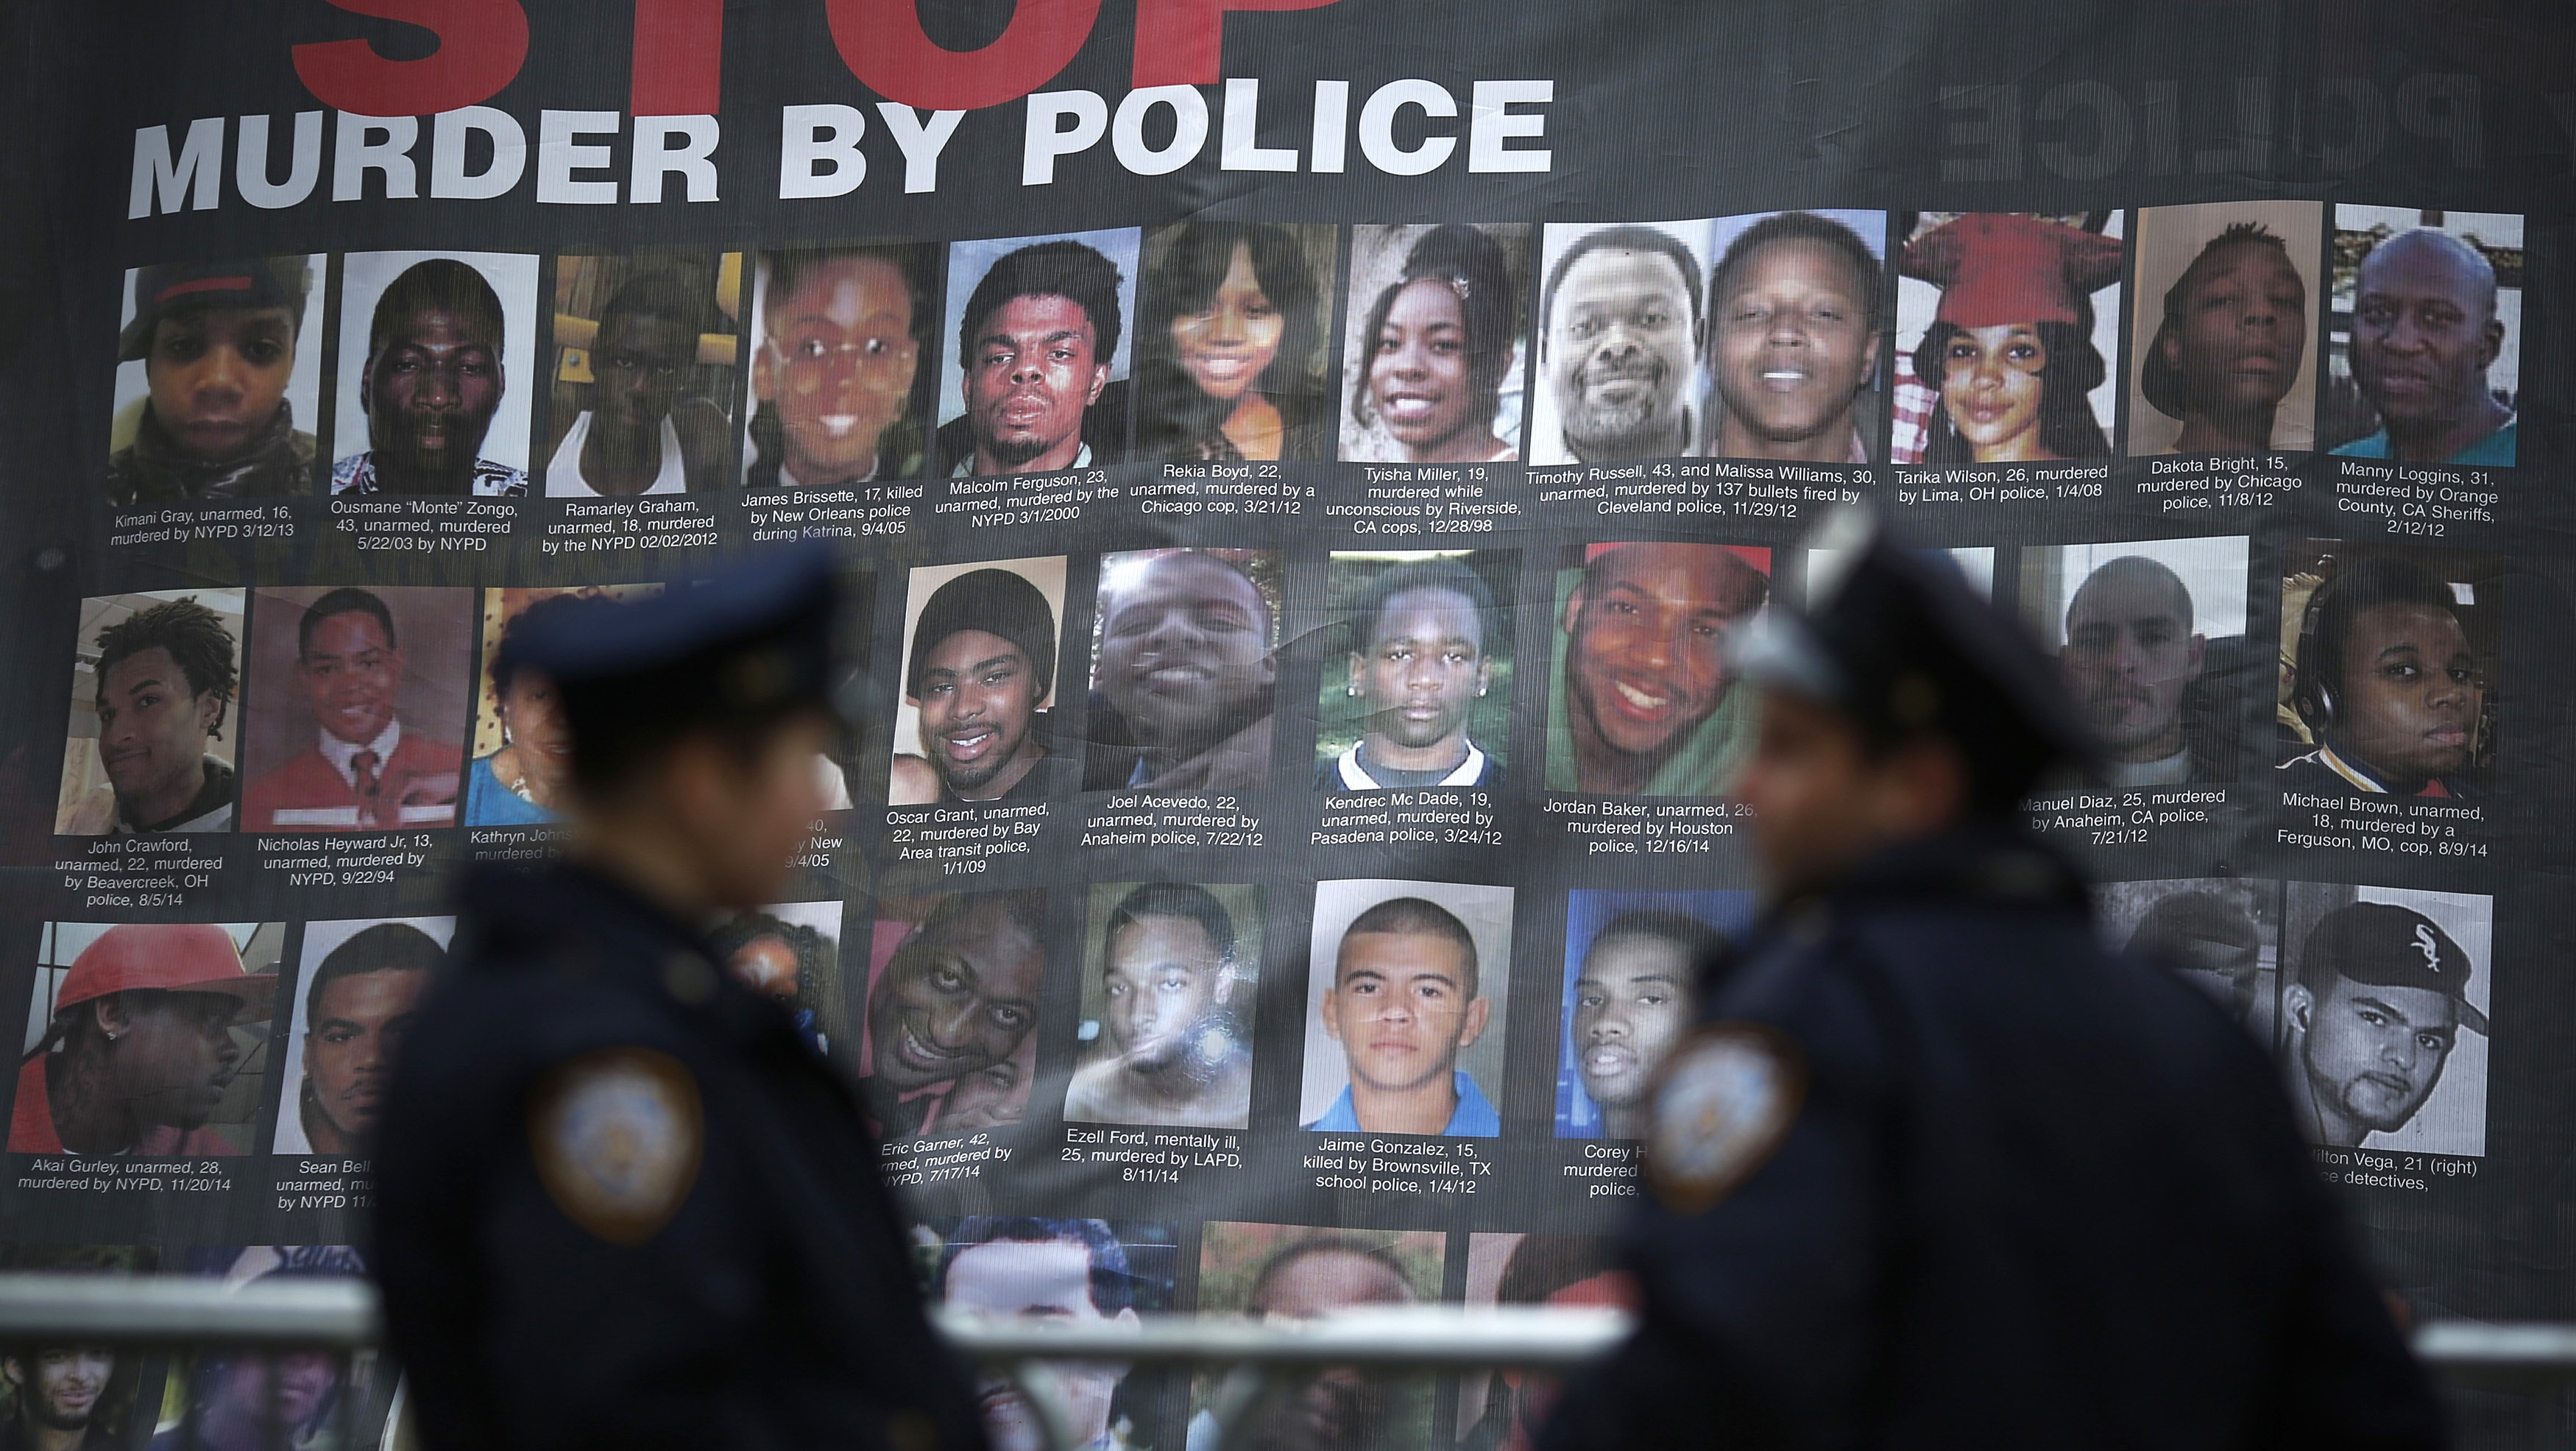 New York to Get Special Prosecutor to Investigate Police Killings of Unarmed Civilians